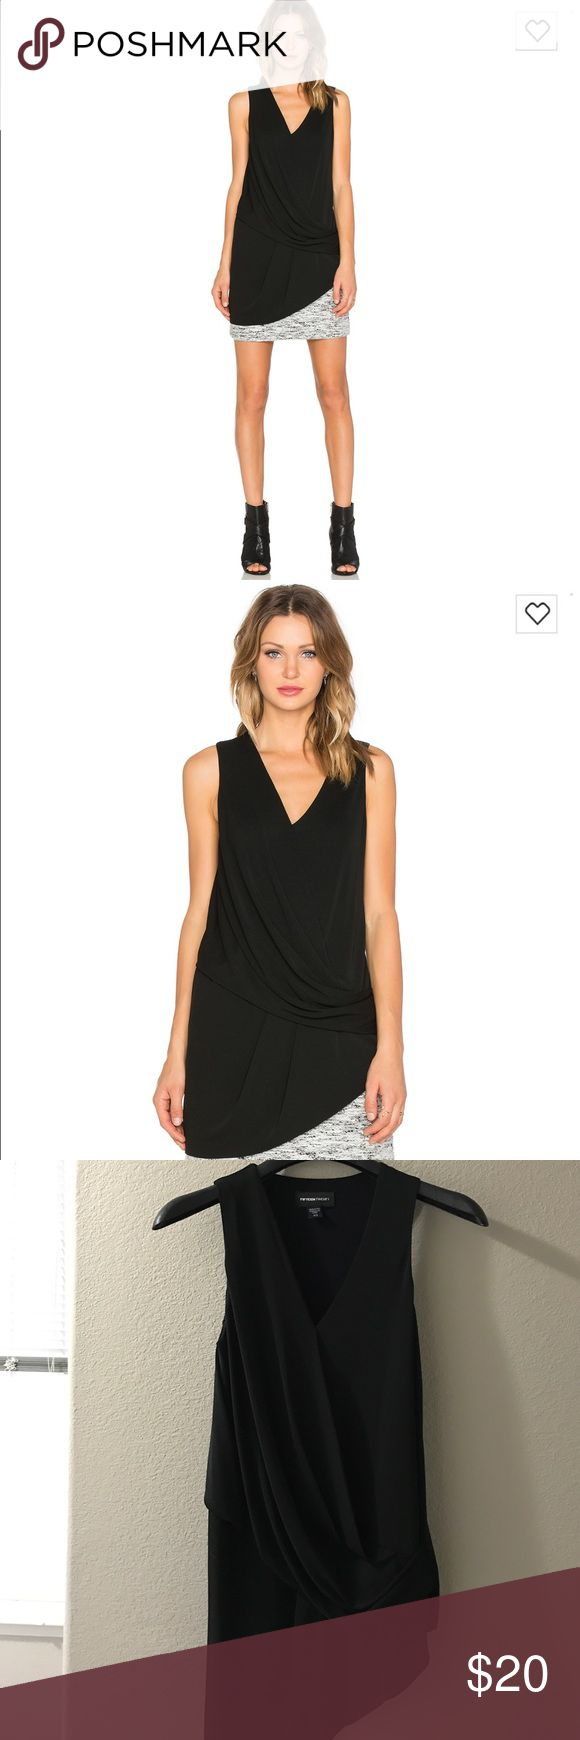 Fifteen twenty draped shirt NWOT!!! I purchased it at topshop online but never got a chance to wear it. Very soft and elegant. Can pair with jean for a work day or legging and heel!! 😍 Topshop Tops